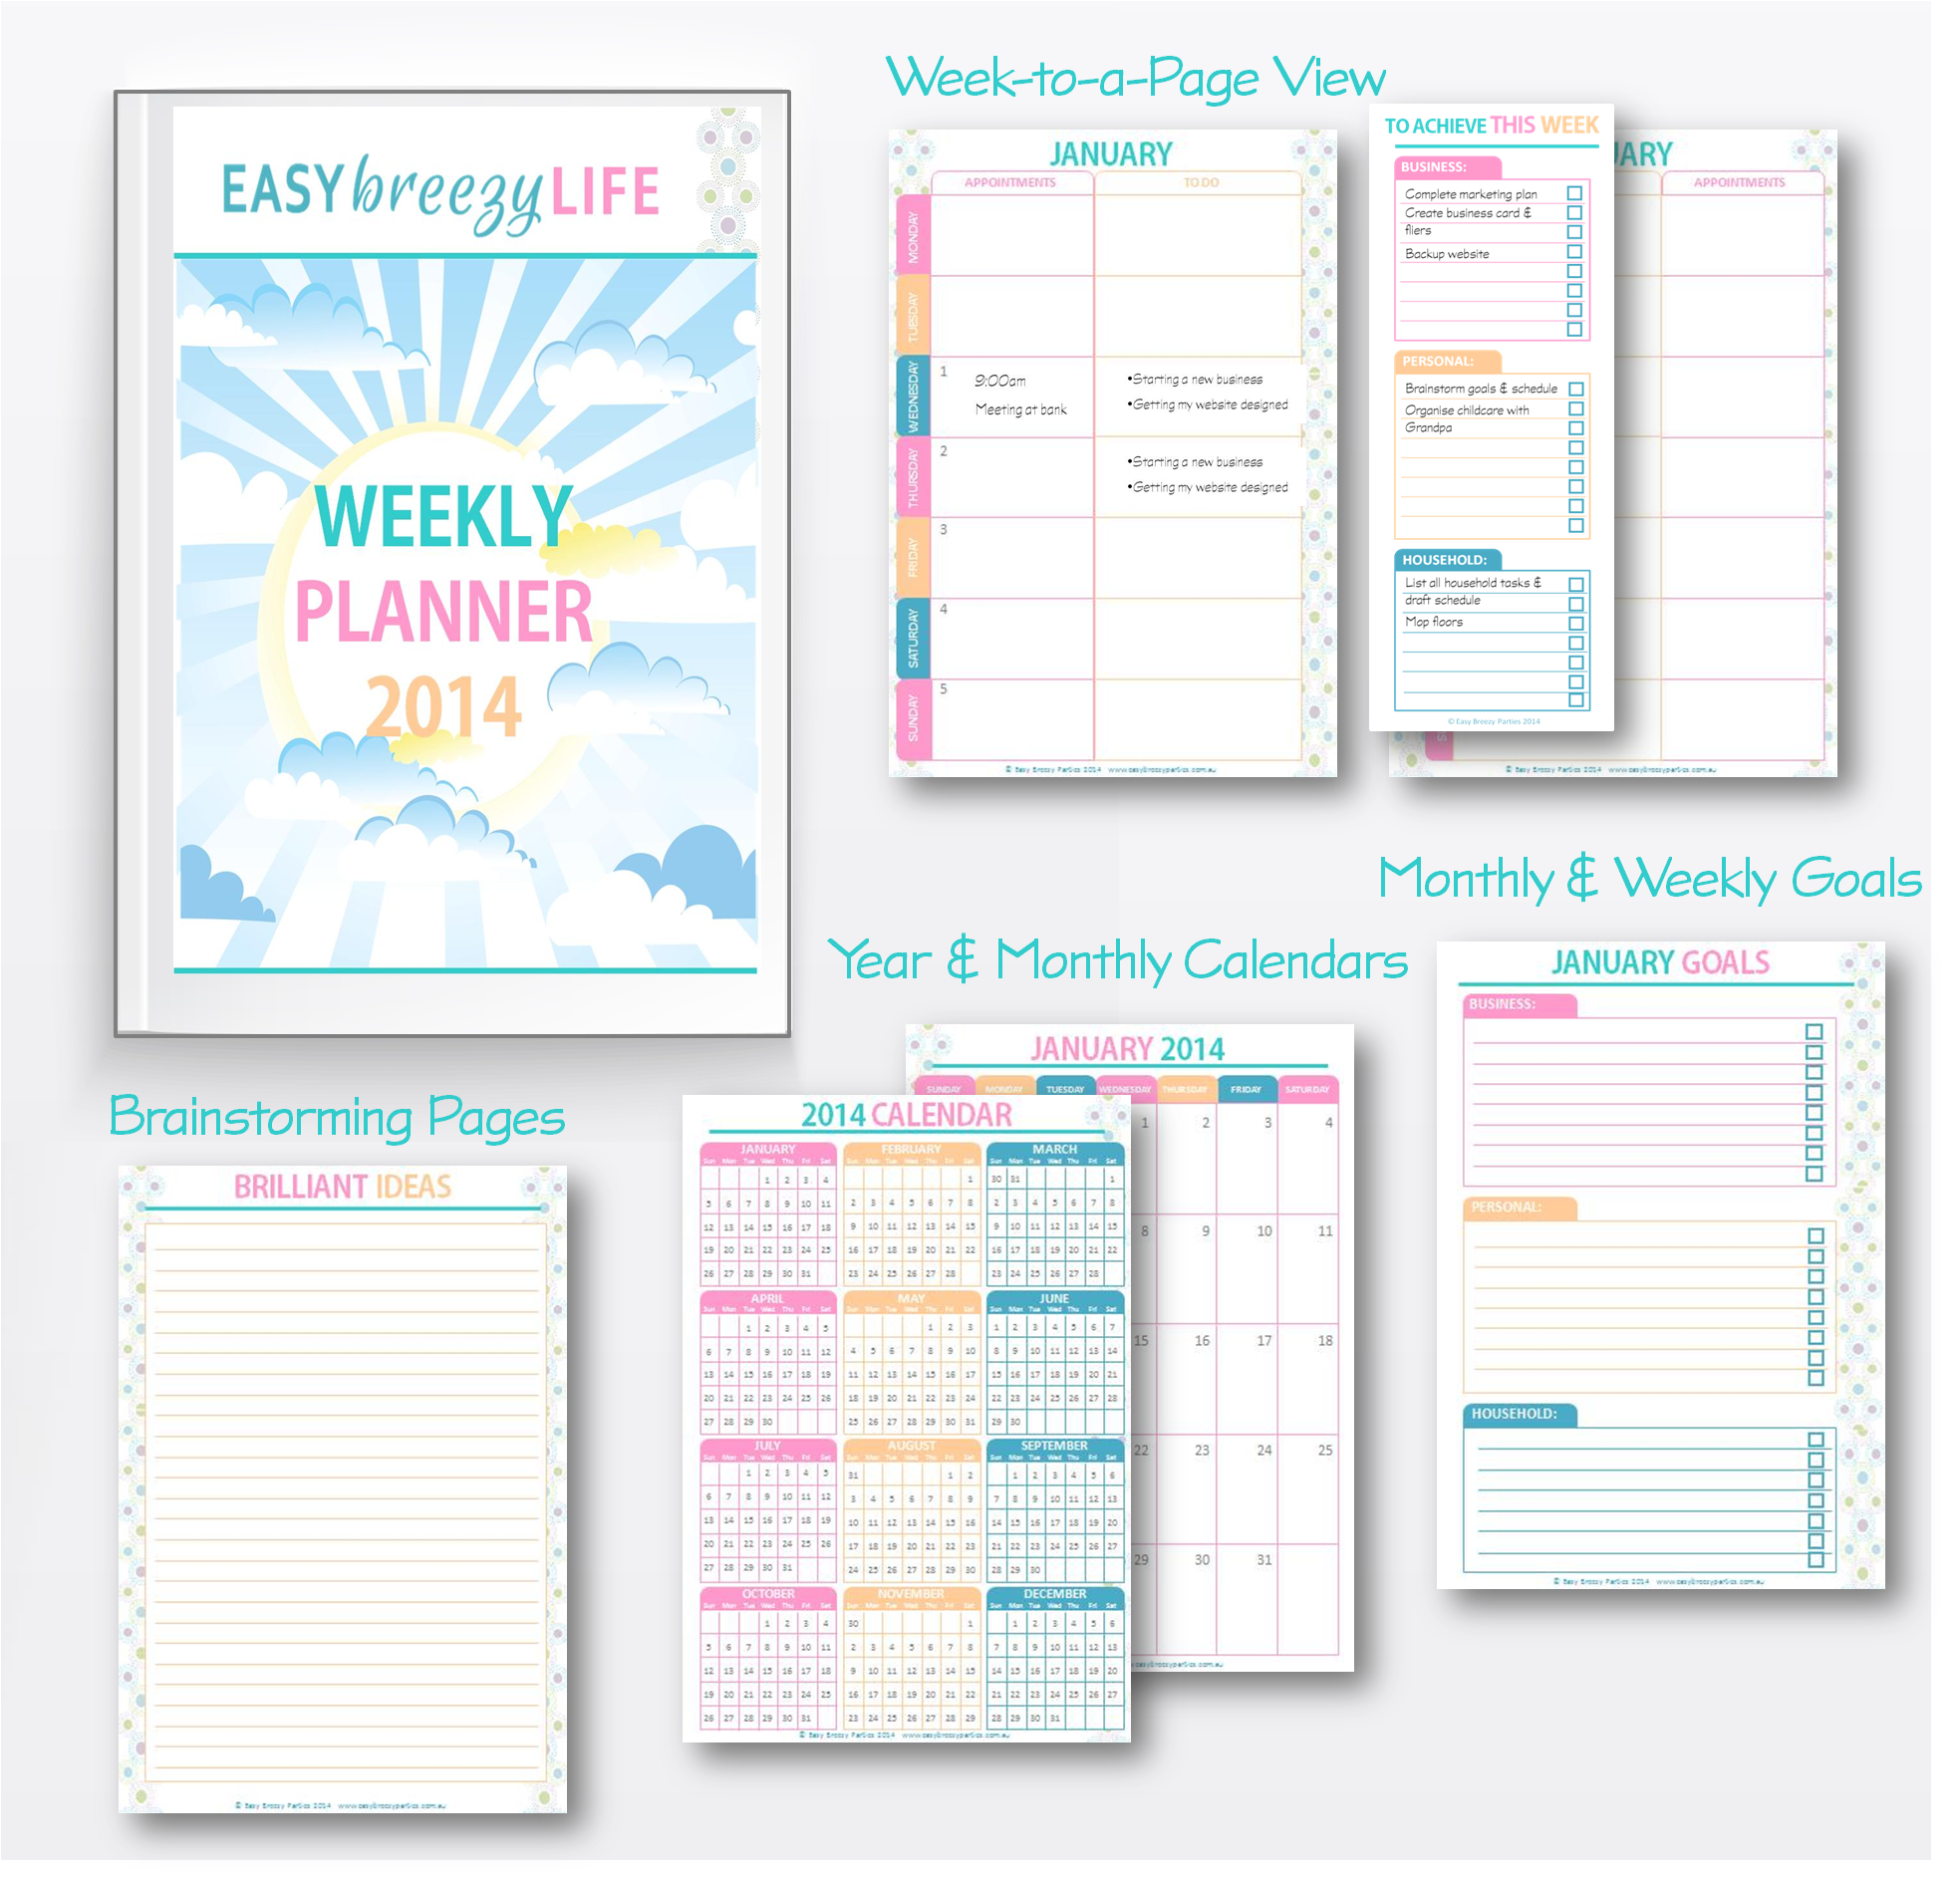 Free Printable Planner for 2014 Includes yearly and monthly